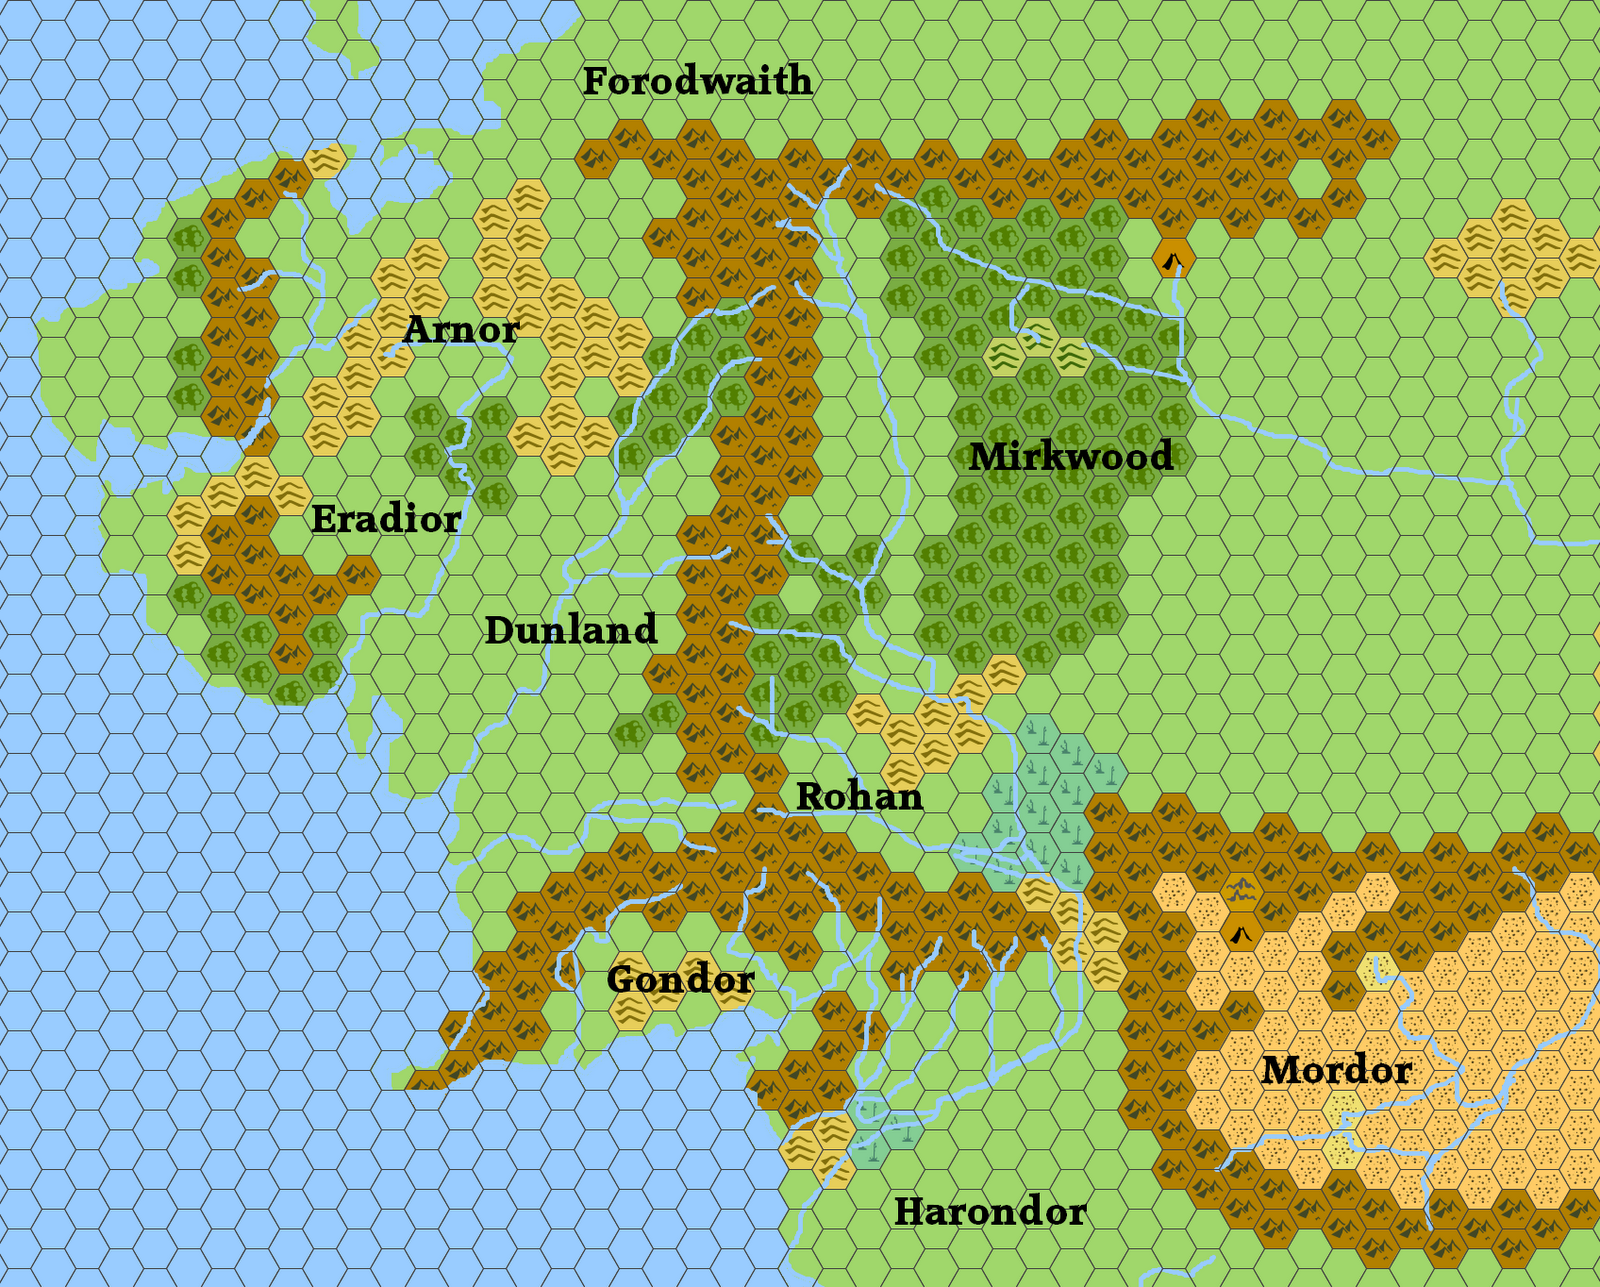 so i did it not a very detailed map but the kind of one you could use in a vanilla odd campaign